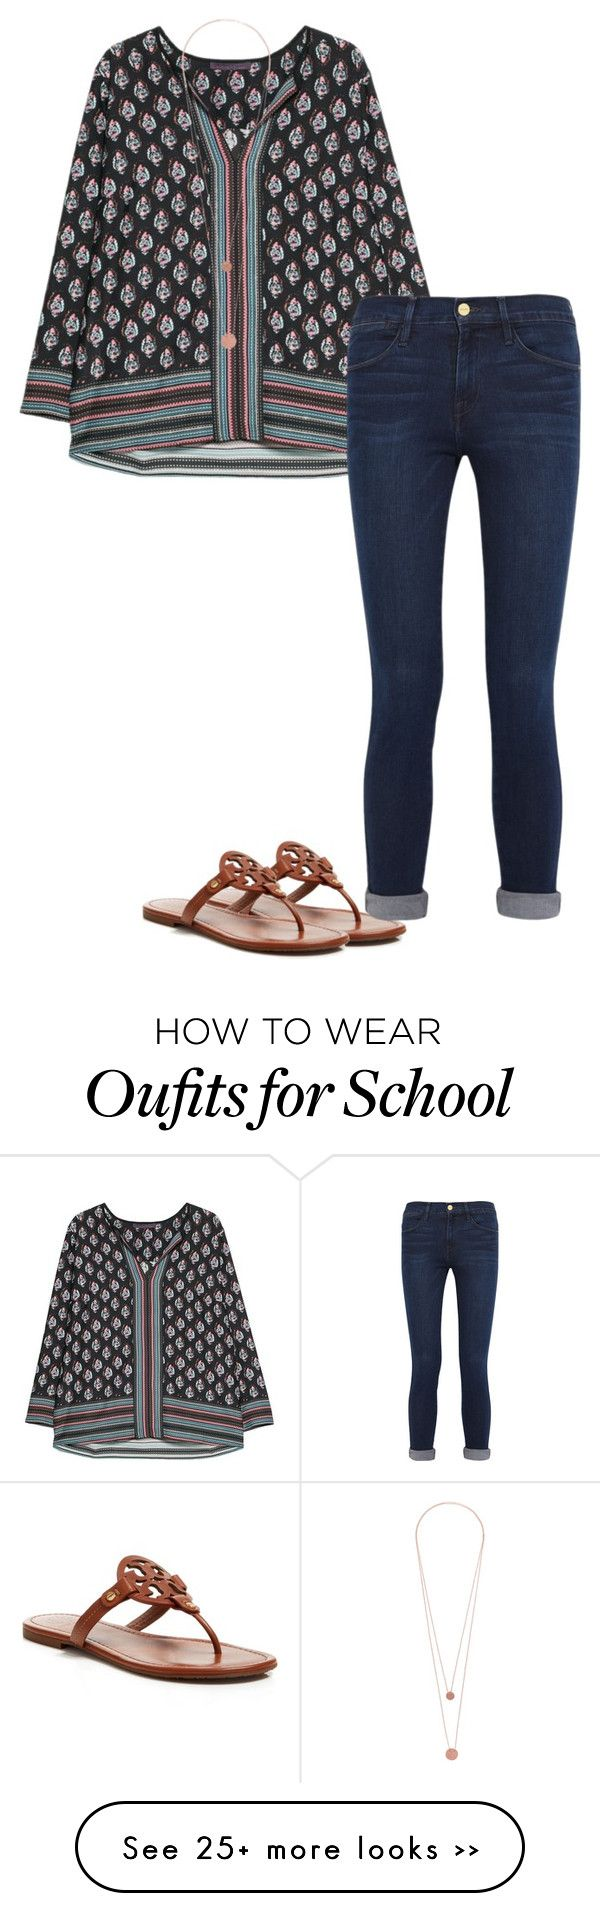 """outfit for school maybe"" by sassy-and-southern on Polyvore featuring Tory Burch, Violeta by Mango, Pieces and Frame Denim"